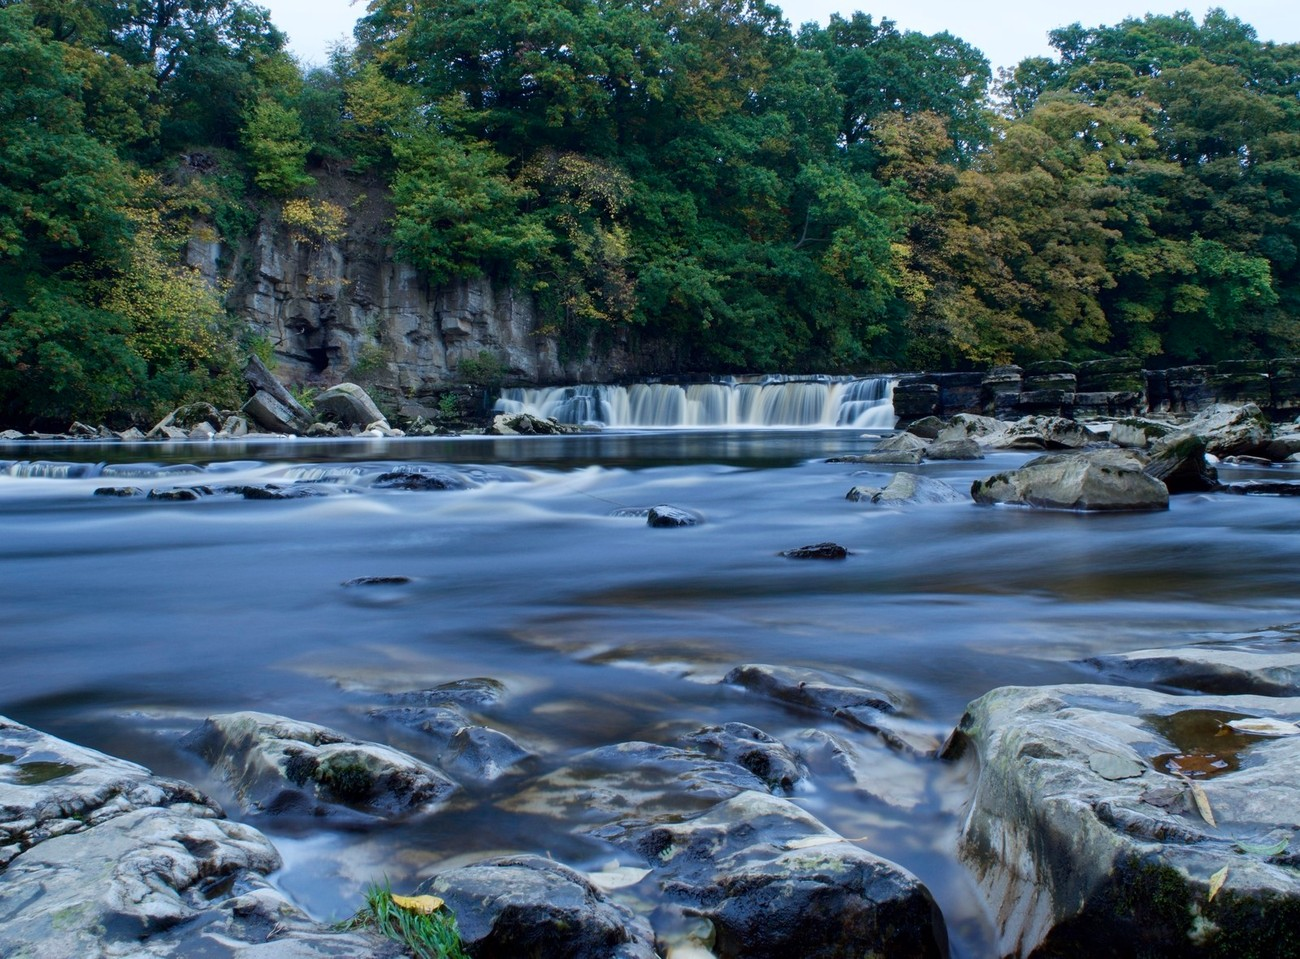 River Swale, North Yorkshire